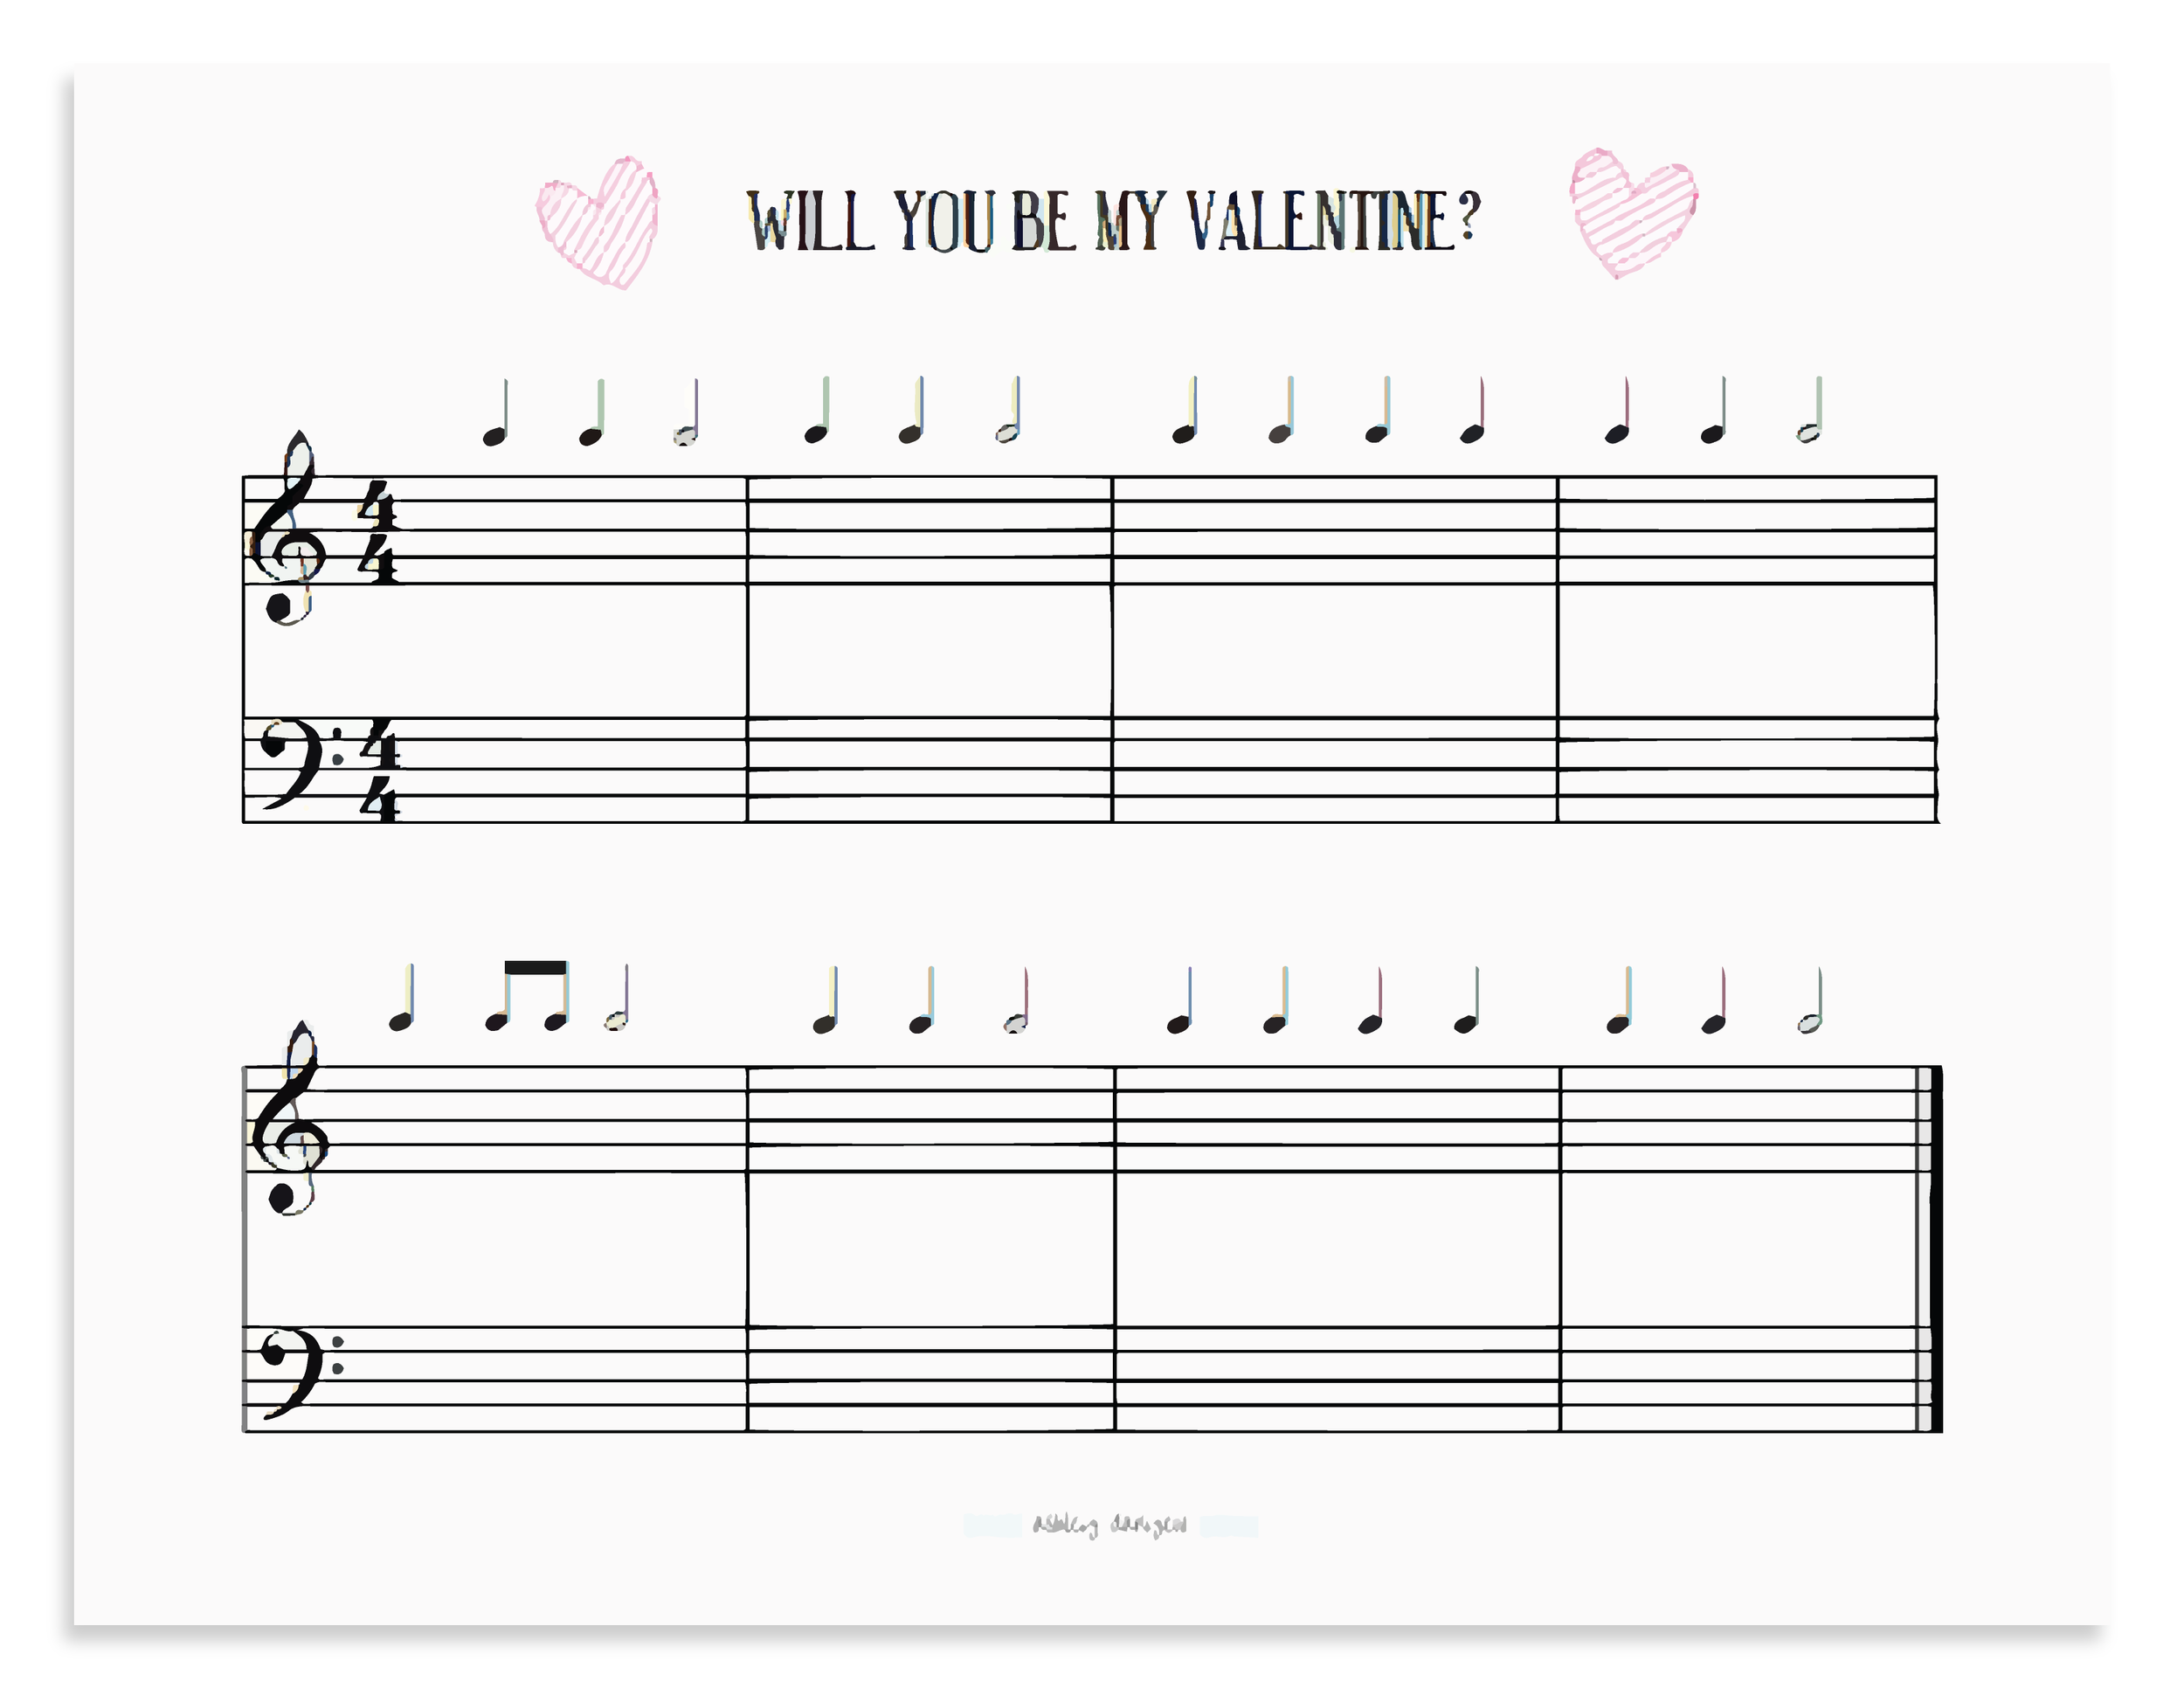 Valentine Composition Project Worksheet by Ashley Danyew